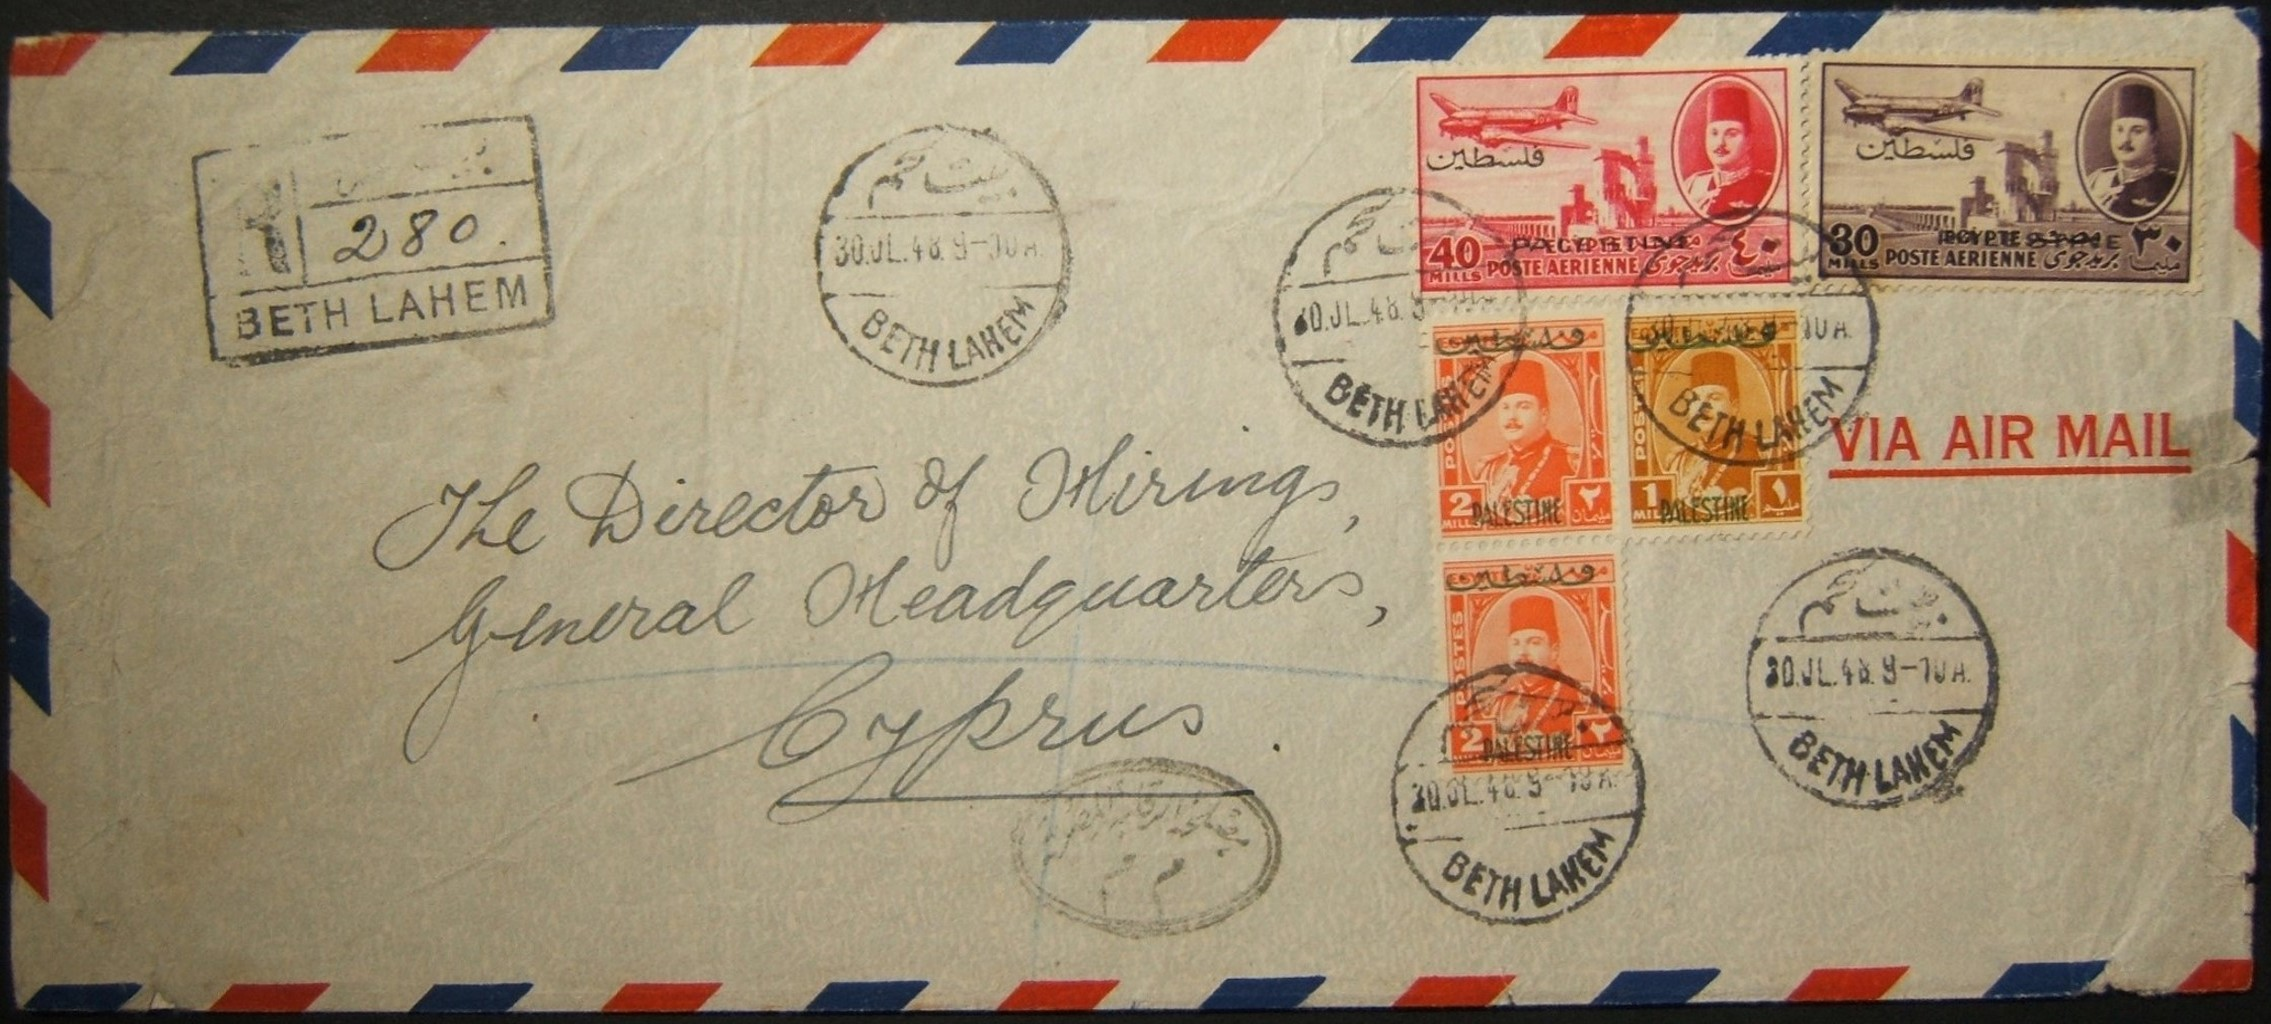 War-affected Egyptian occupation mail: 30 JL 1948 reg. a/m comm. cv ex BETH LAHEM (r/a Br.(?) sender at